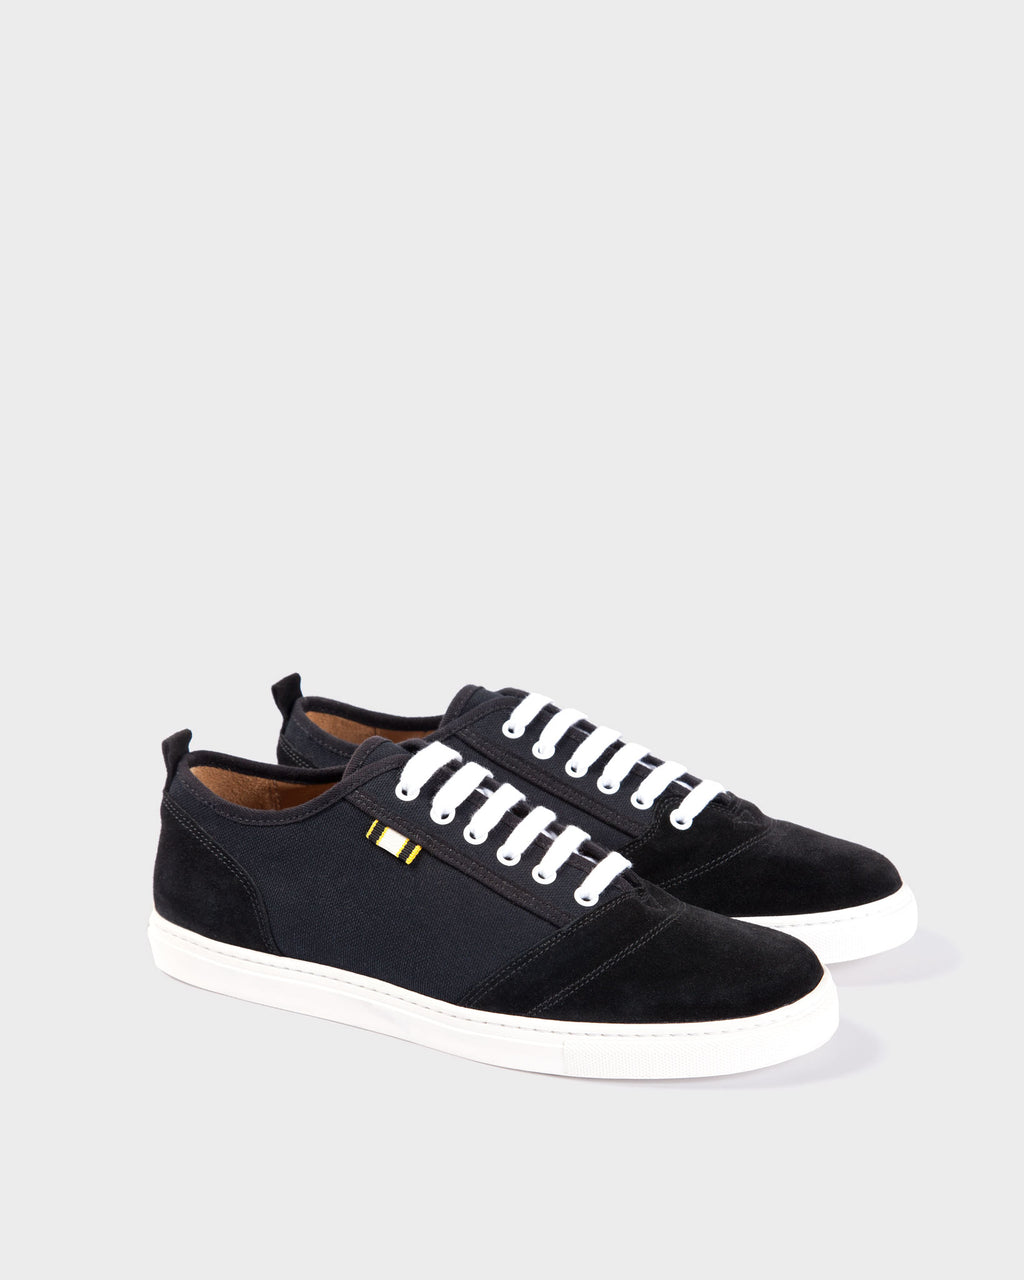 APR001 - Suede & Canvas - Black/Black